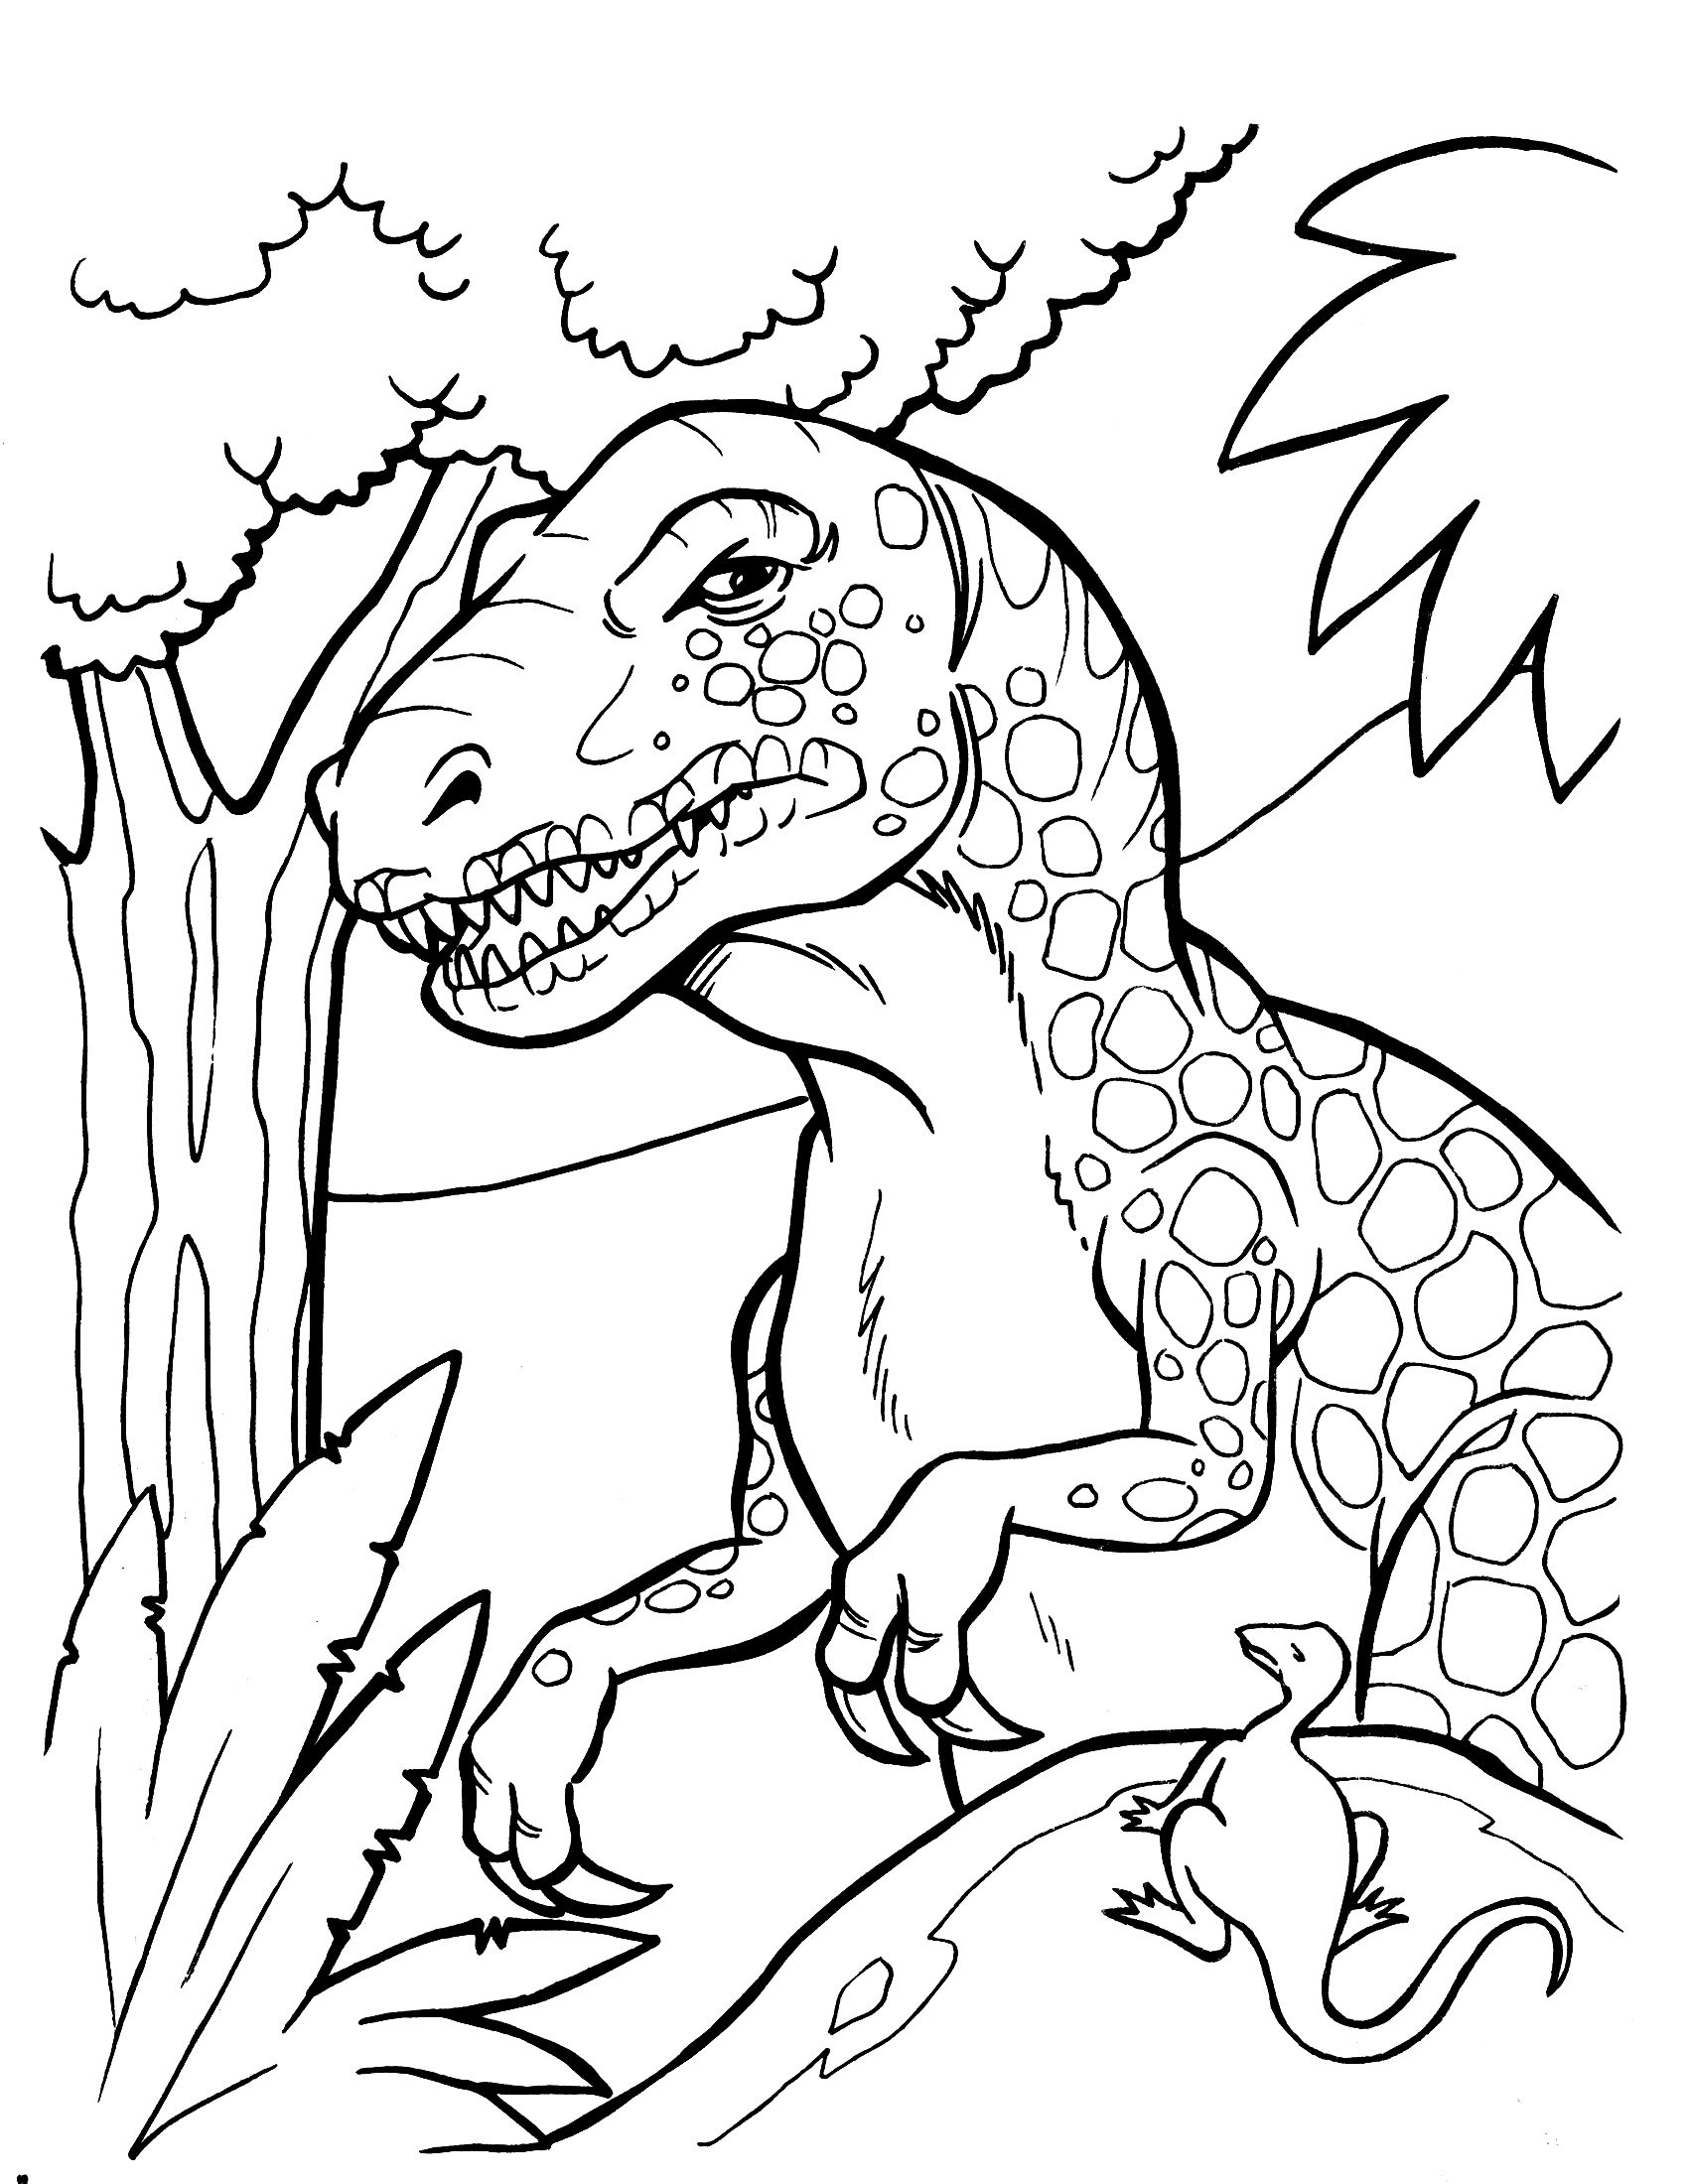 Dinosaur Coloring Pages 360coloringpages With Images Dinosaur